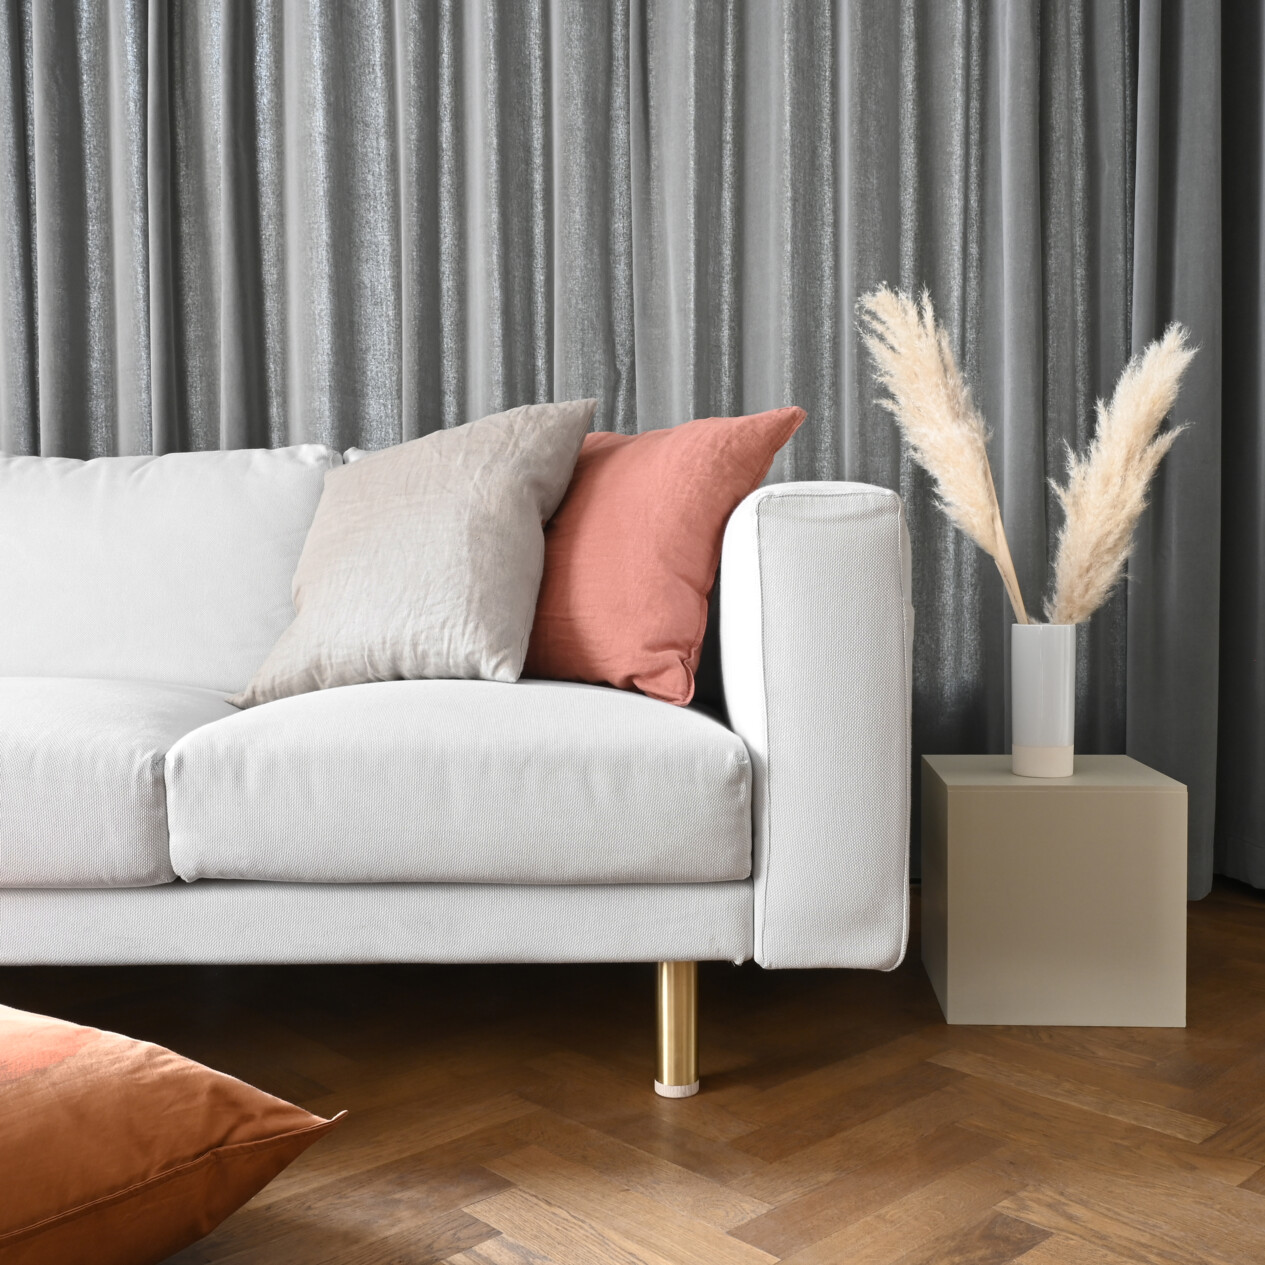 Full Size of Togo Sofa Alternatives Couch For Small Spaces Best Bed Ikea Sleeper Uk To Sofas Crossword Reddit Living Room Cheap Kaufe Neue Mbelbeine Fr Dein Prettypegs Sofa Sofa Alternatives